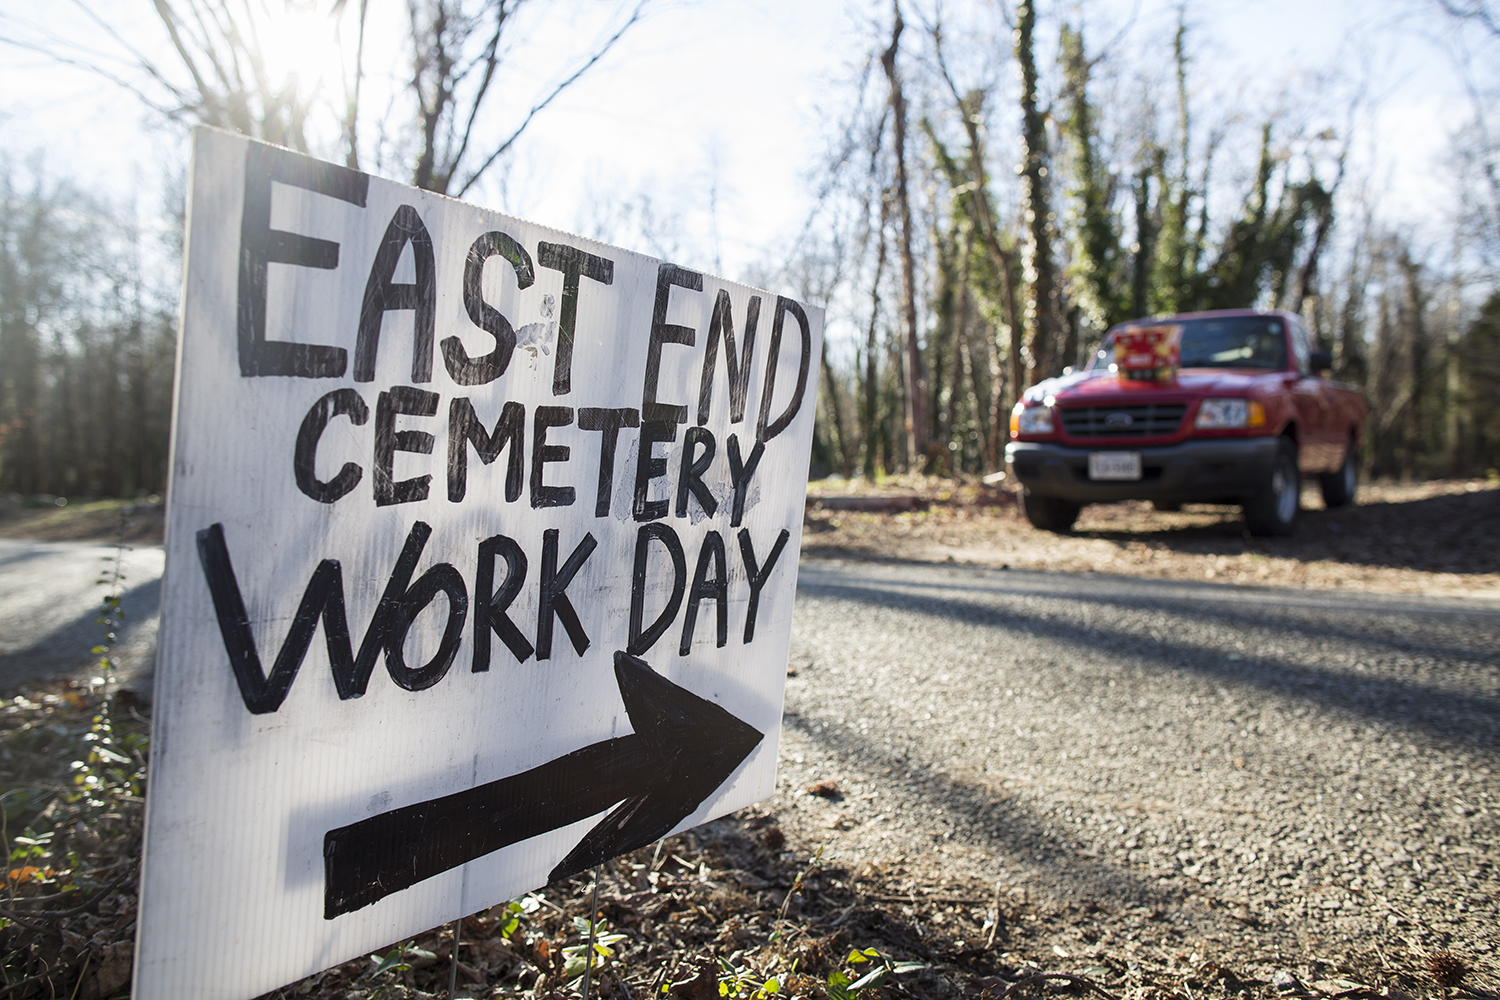 East End Cemetery Work Day, Henrico County/Richmond, Virginia, January 31, 2015. ©brianpalmer.photos 2015